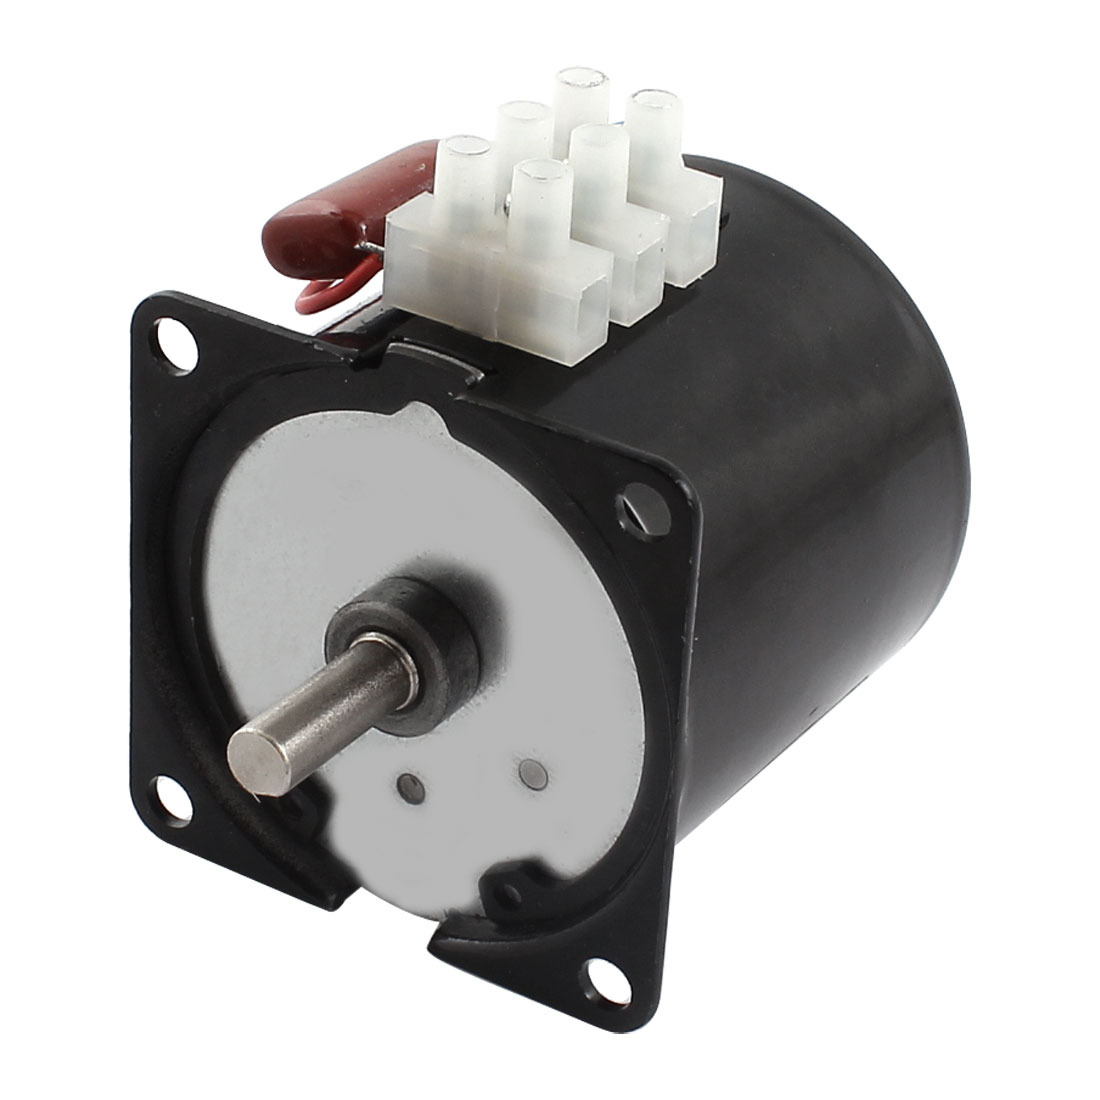 AC 220V 50Hz 14W 5RPM 60mm Dia Synchronous Reduction Geared Gearbox Motor